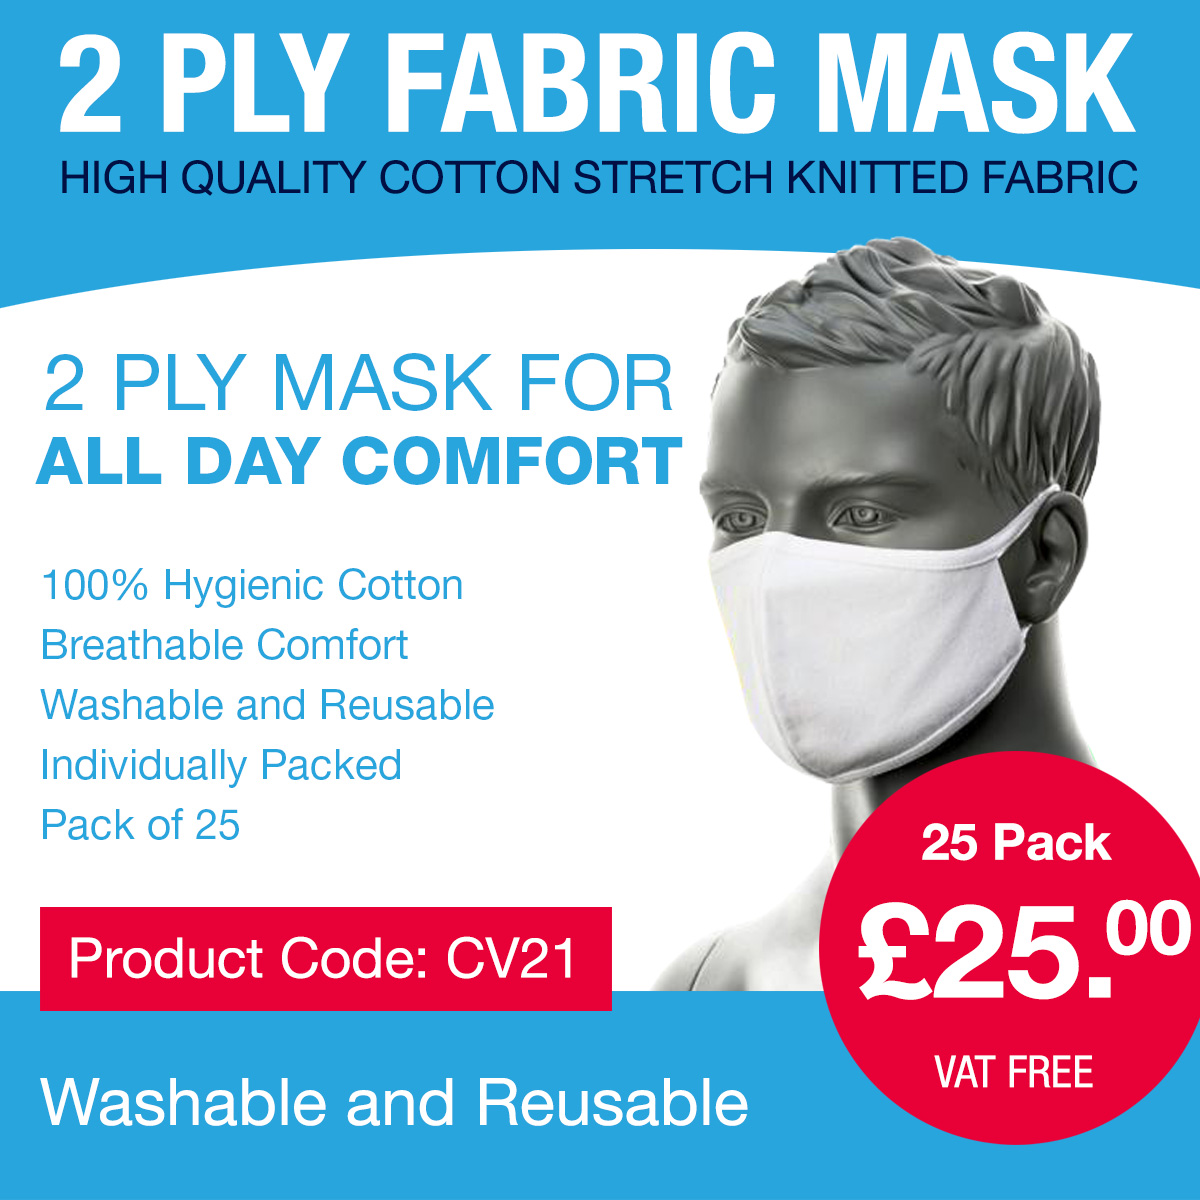 2-Ply Fabric Face Mask from Portwest